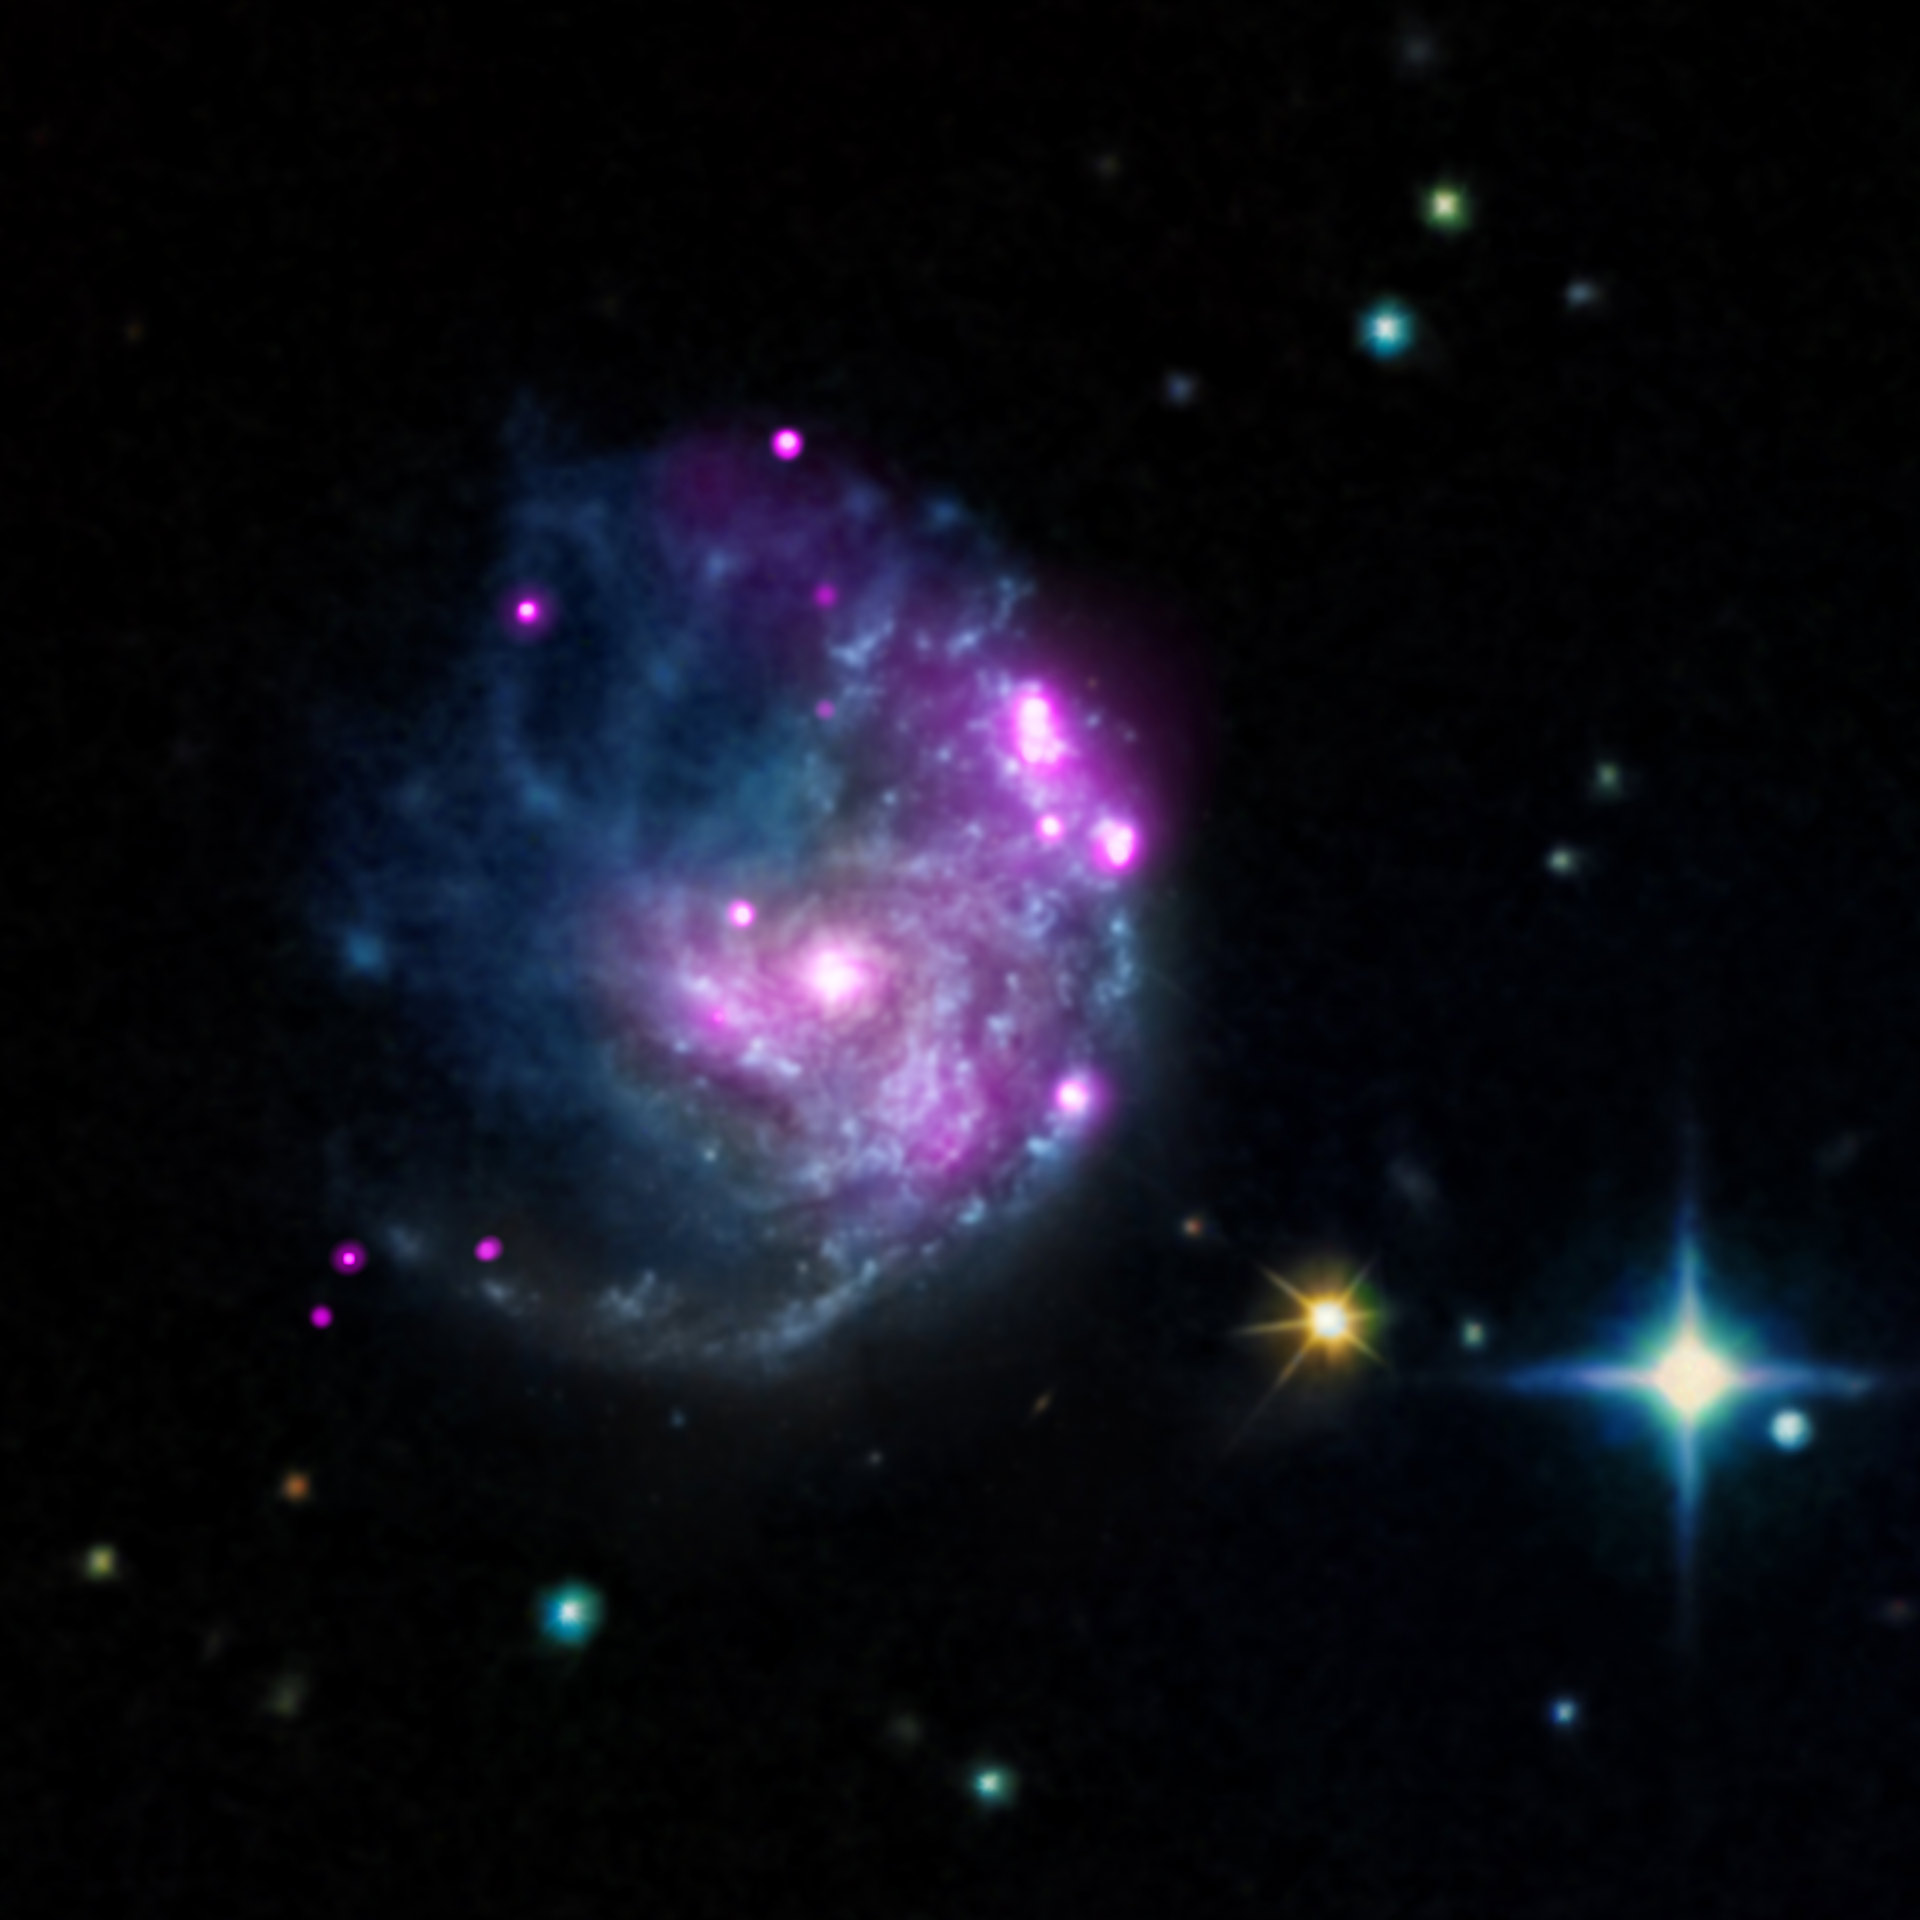 Chandra Discovers Intermediate-Mass Black Hole in Spiral ...